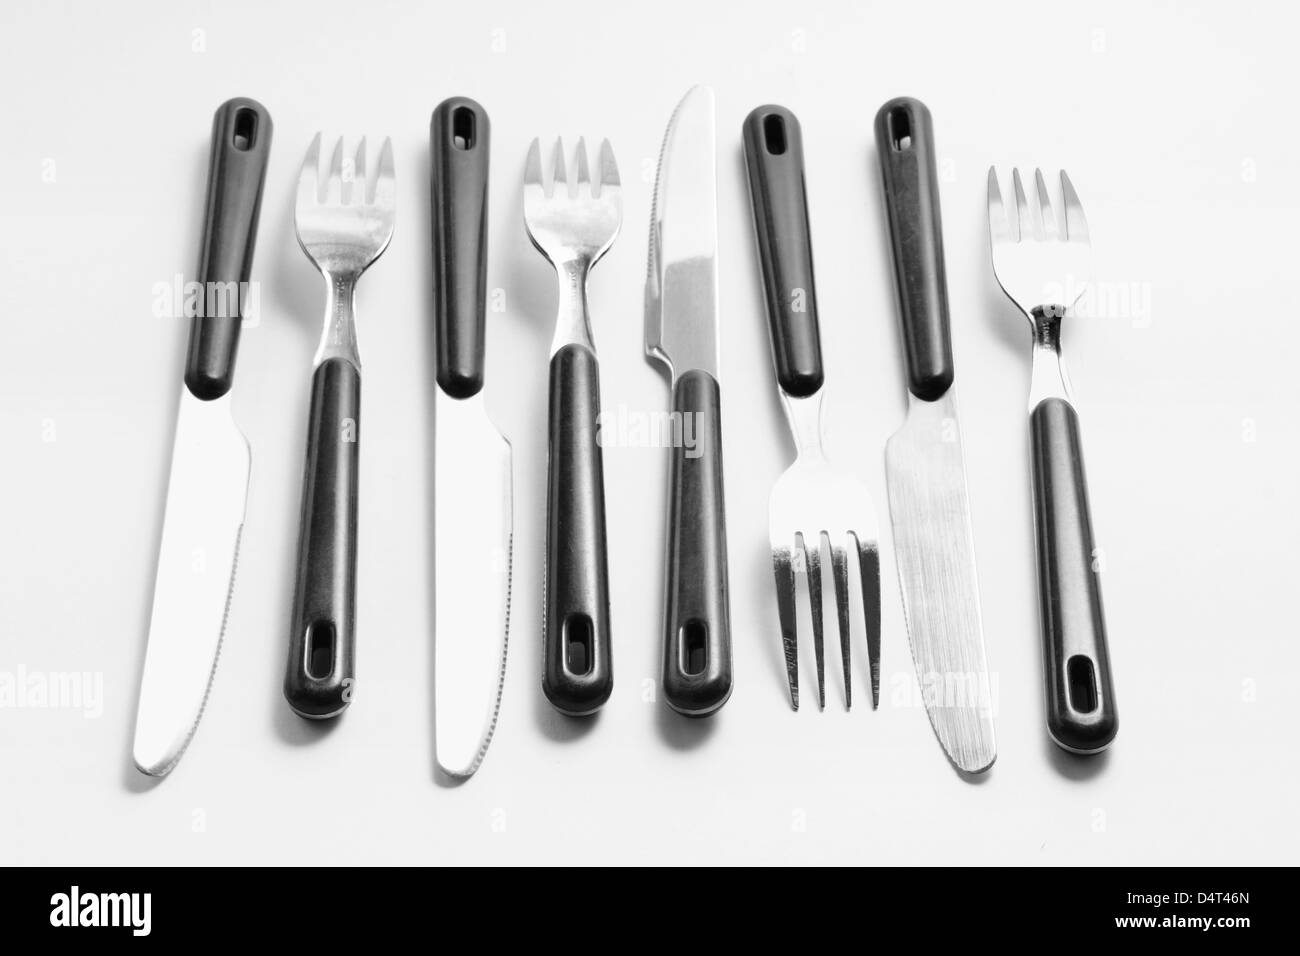 Forks and Knives - Stock Image